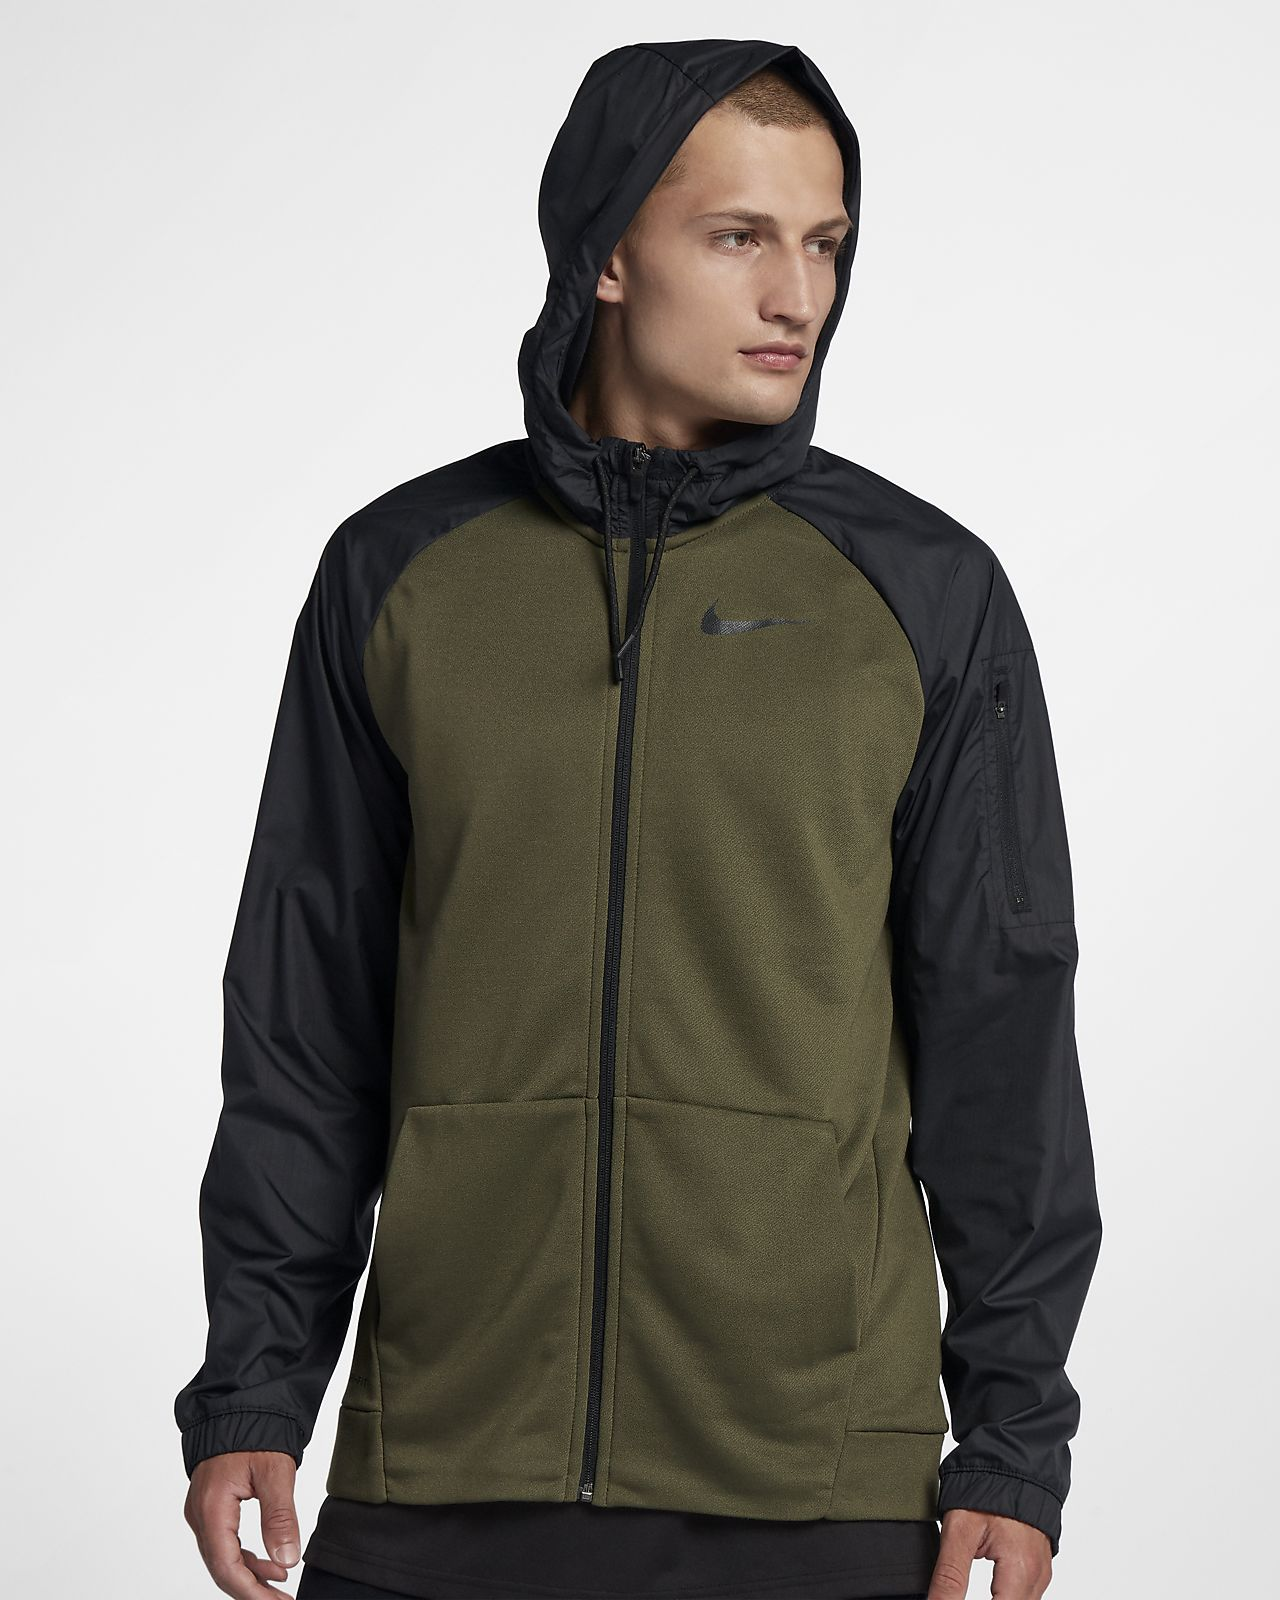 856e6d7e Nike Dri-FIT Men's Utility Full-Zip Training Hoodie. Nike.com CA